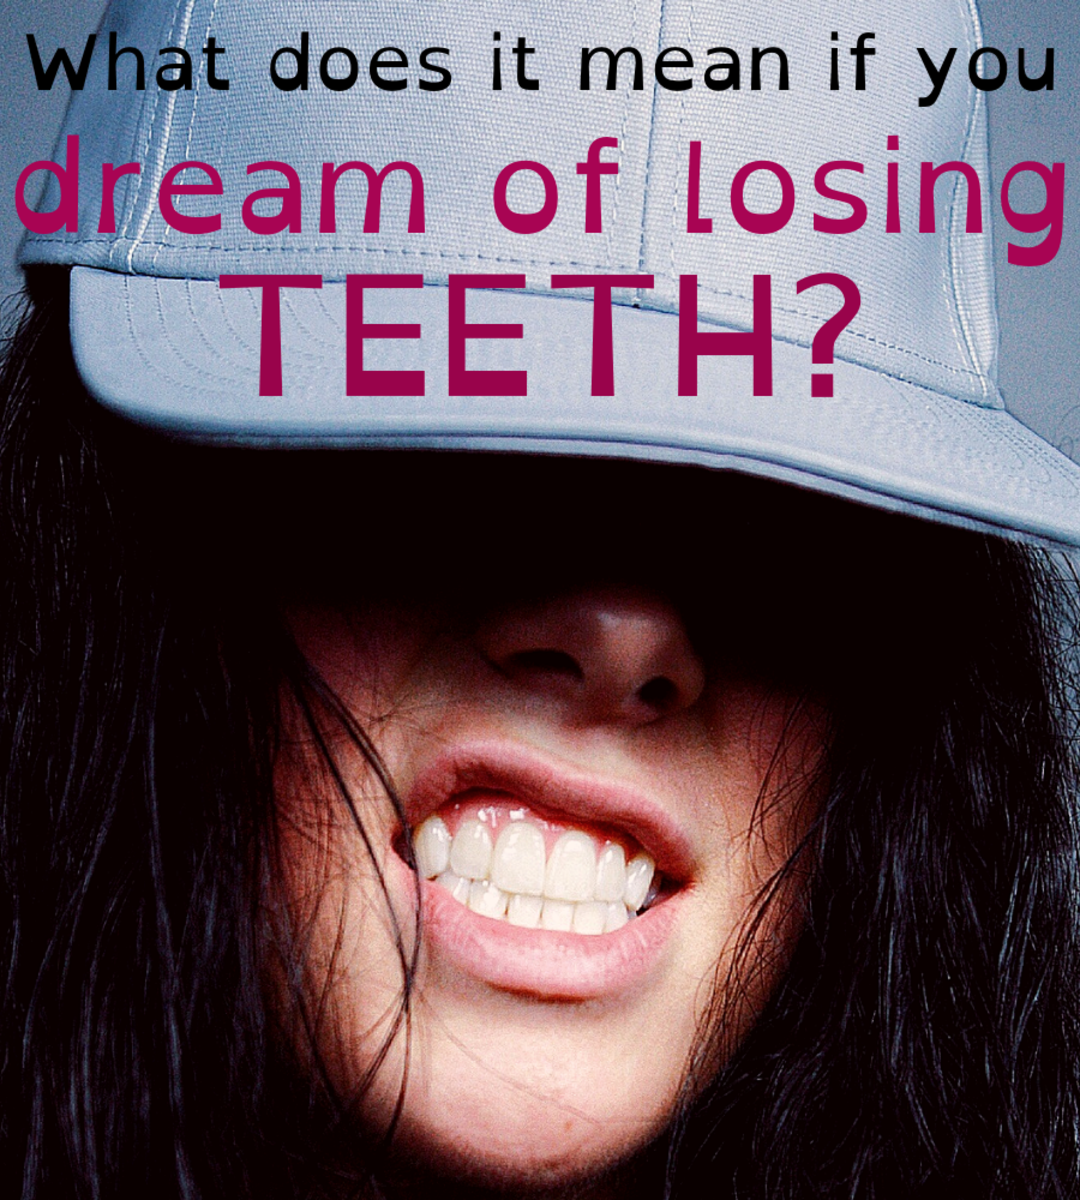 If you dream of losing your teeth, what does it really mean?